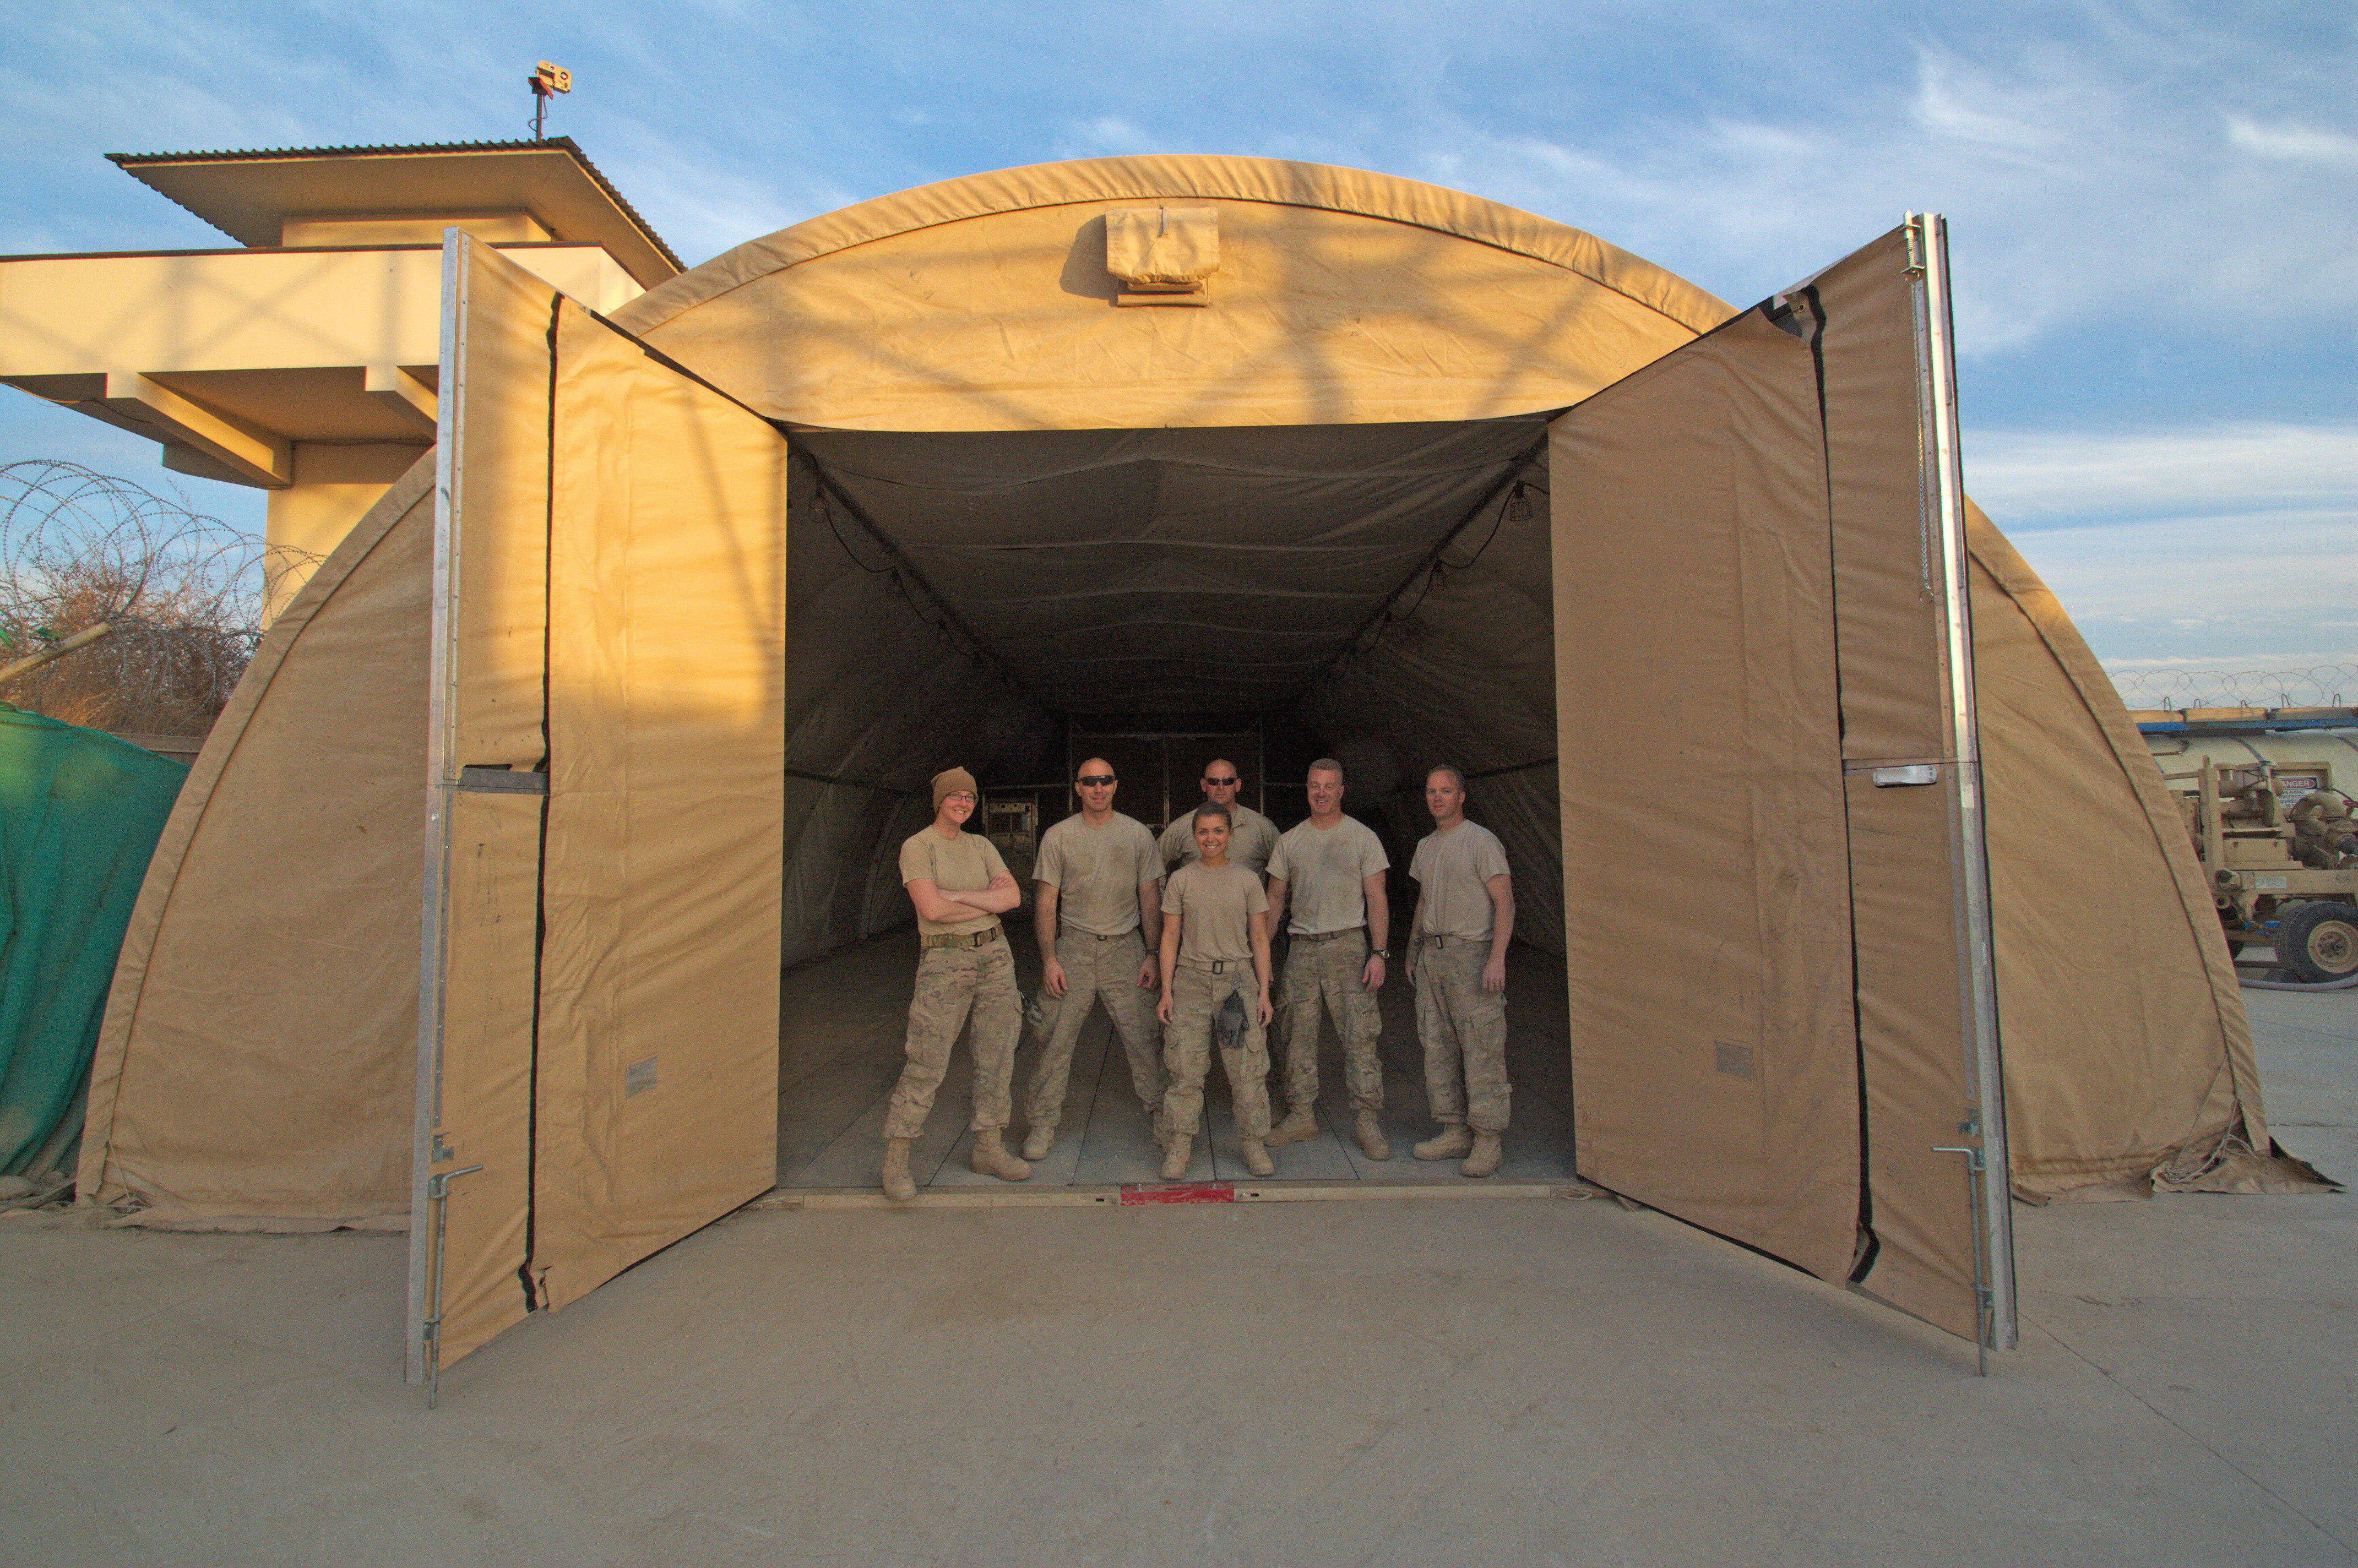 Airmen from the 451st Air Expeditionary Group stand in the entrance of an Alaska tent that ? & Photos